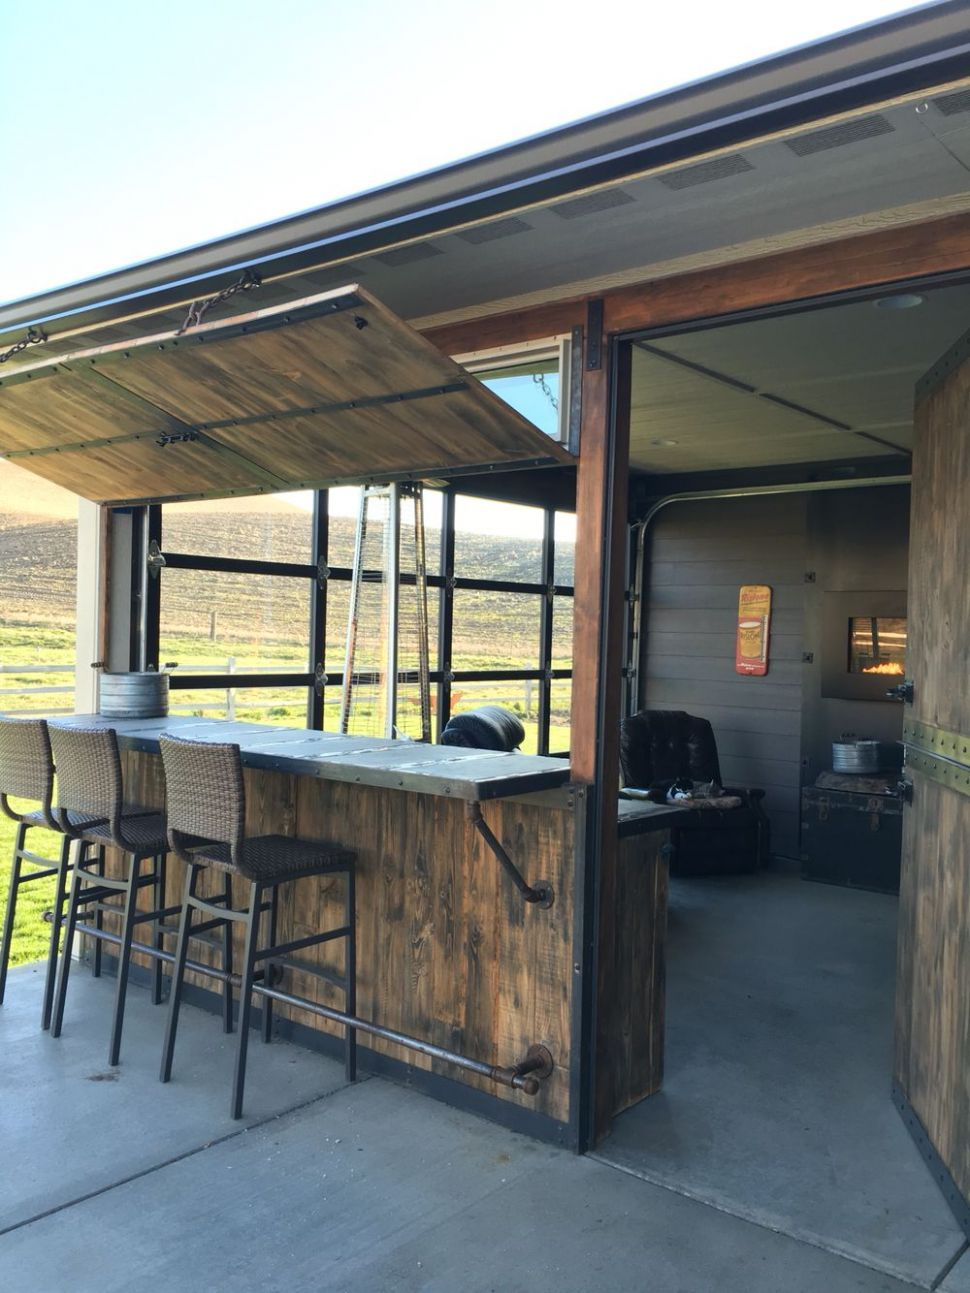 Fun Out door space with bar and sunroom. Glass garage door lets ..